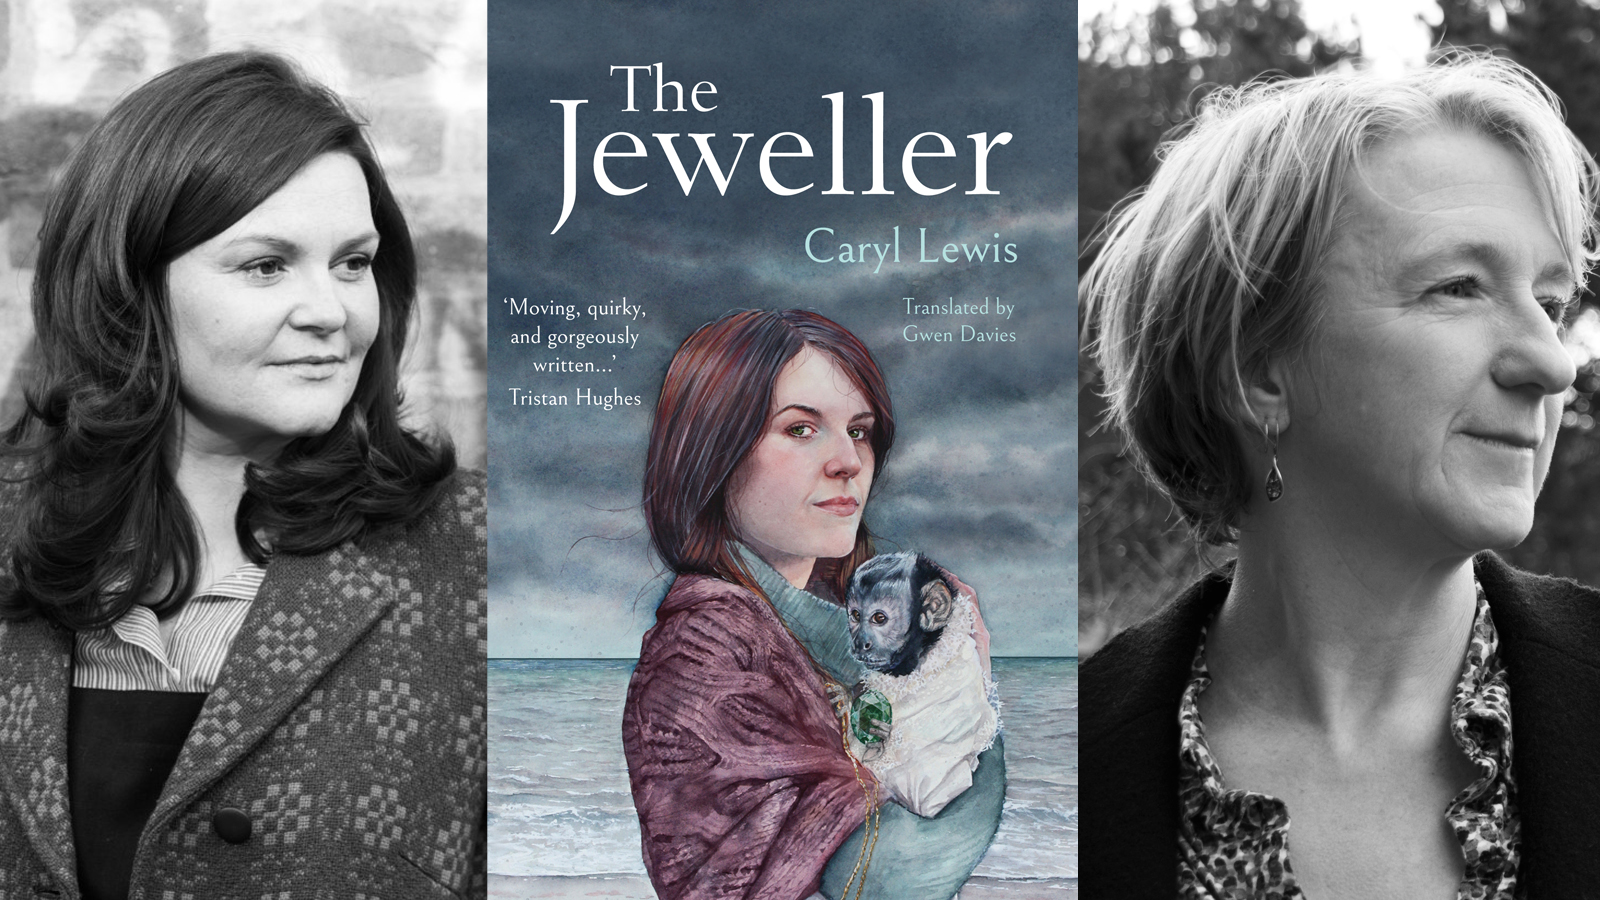 Photographs of Caryl Lewis and Gwen Davies, plus the cover art from The Jeweller